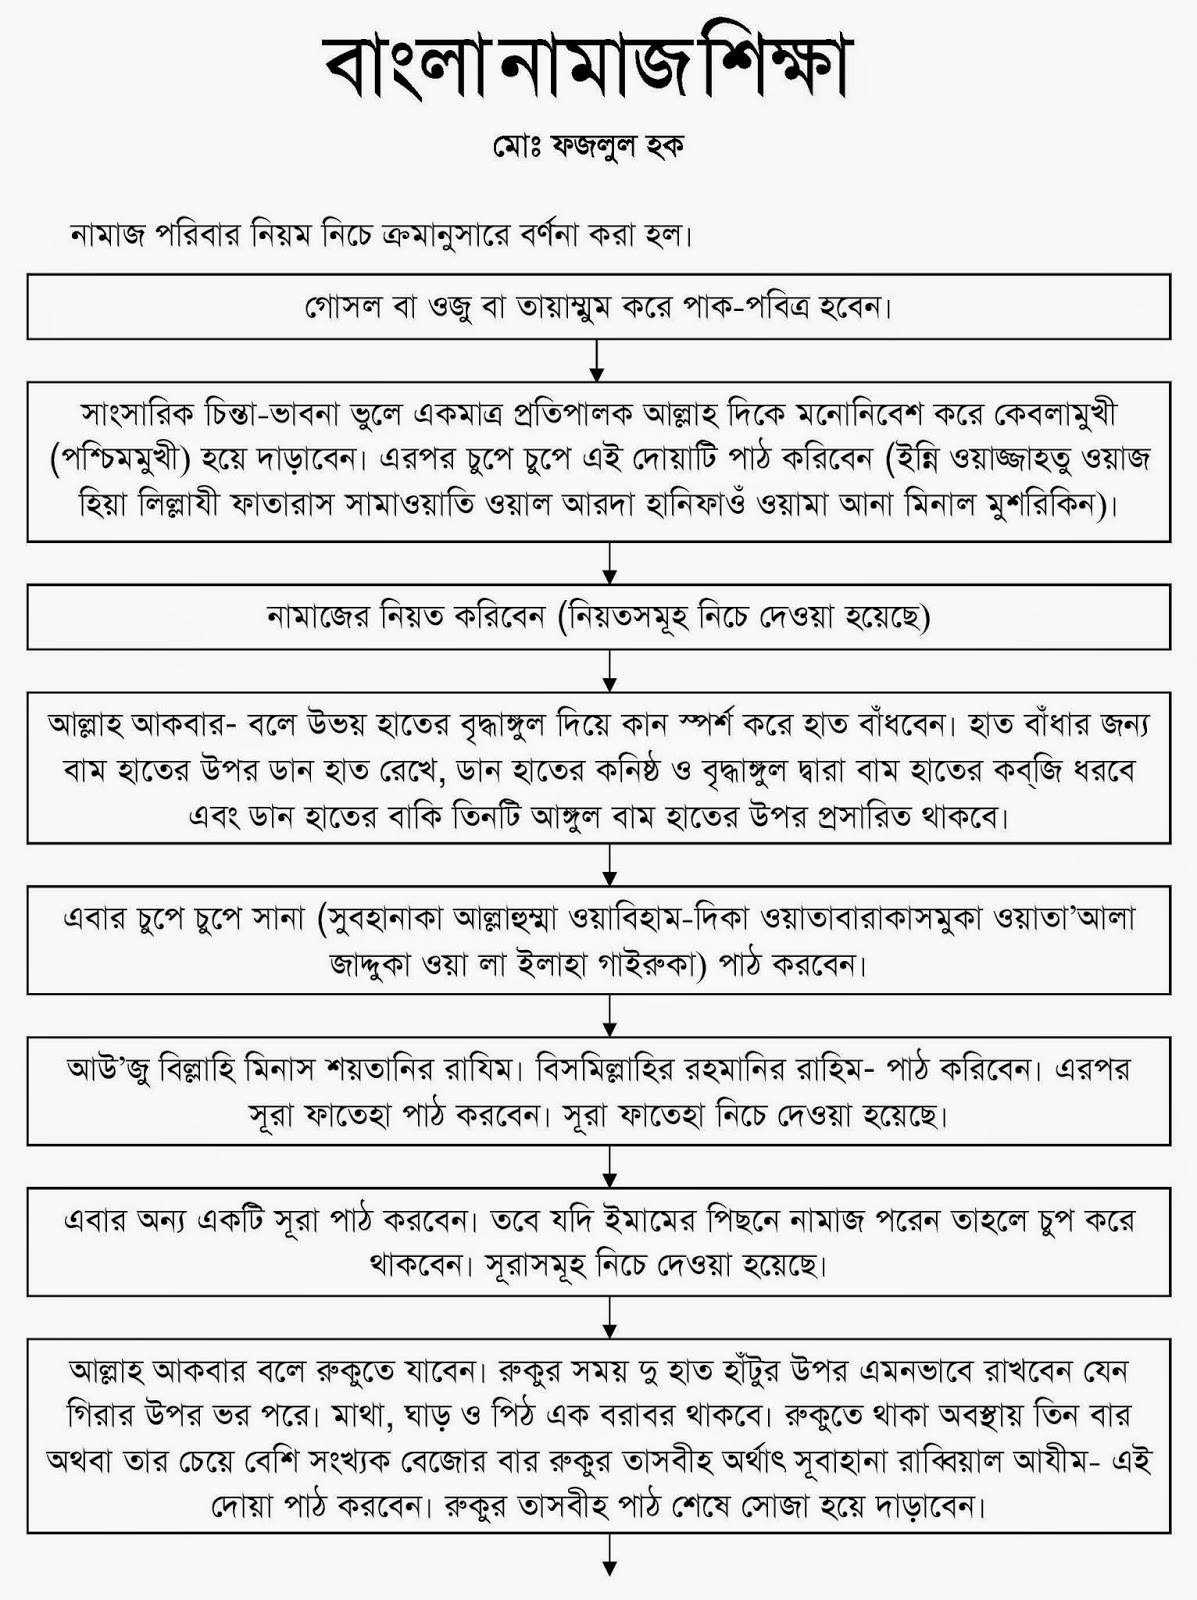 BANGLA NAMAZ SHIKHA BOOK EPUB